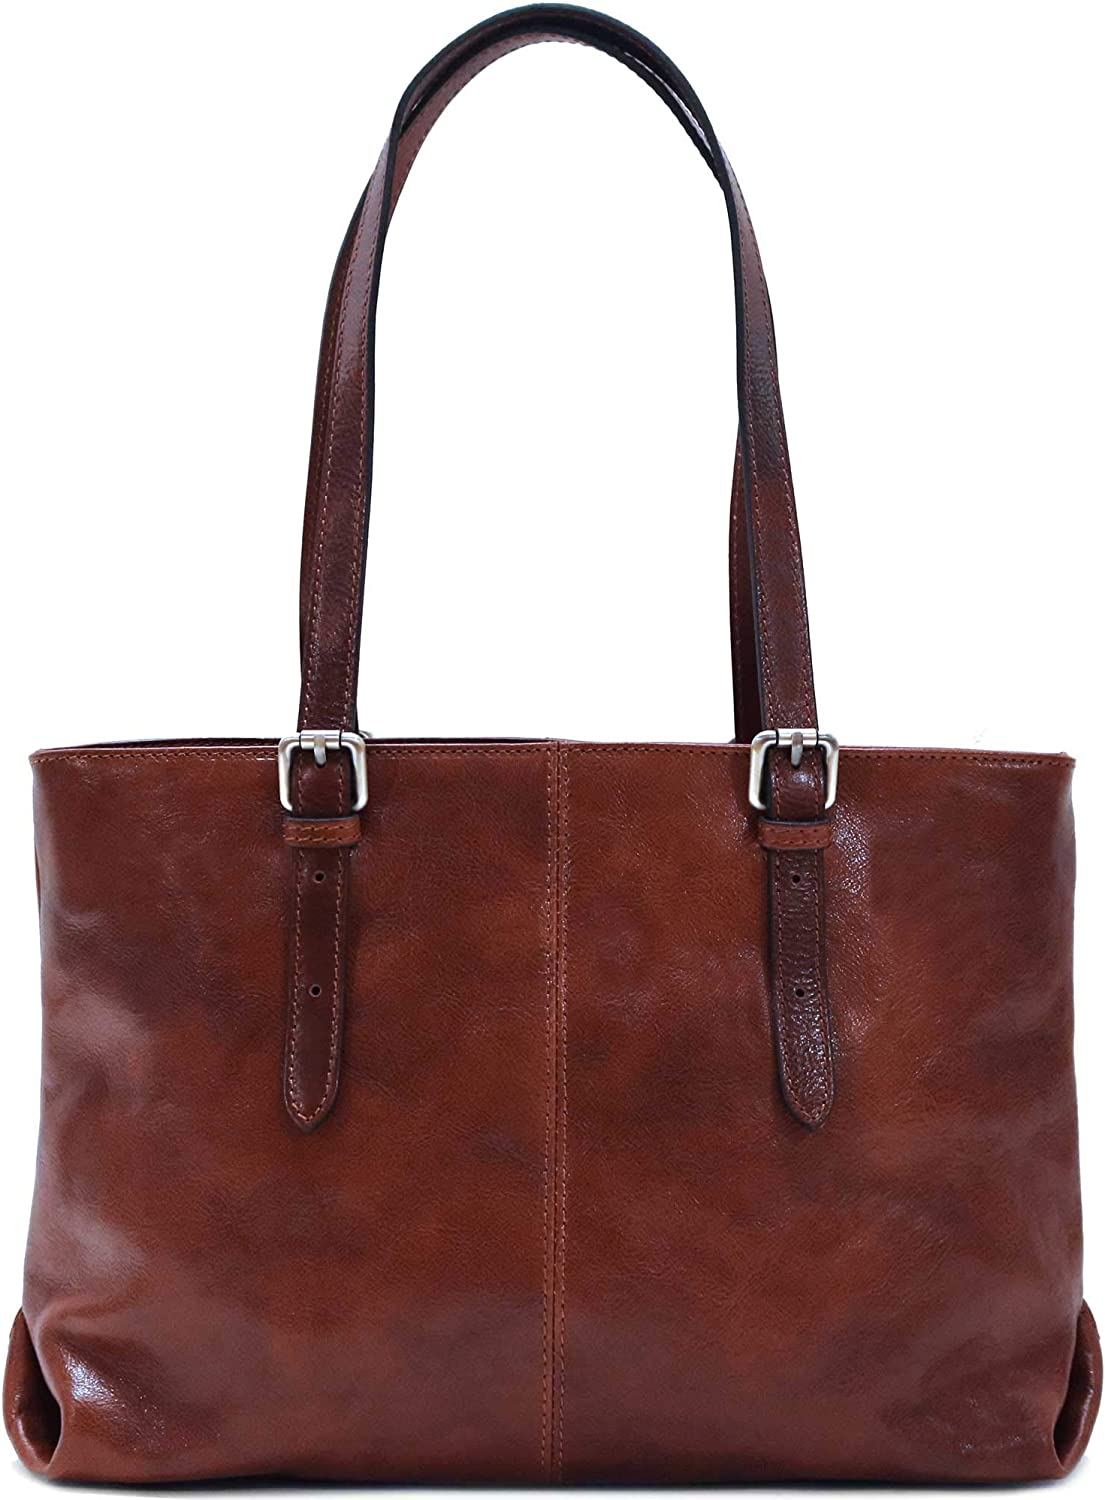 Floto Venezia Italian Leather Shopping Tote Bag Shoulder Bag Women's (Vecchio Brown)